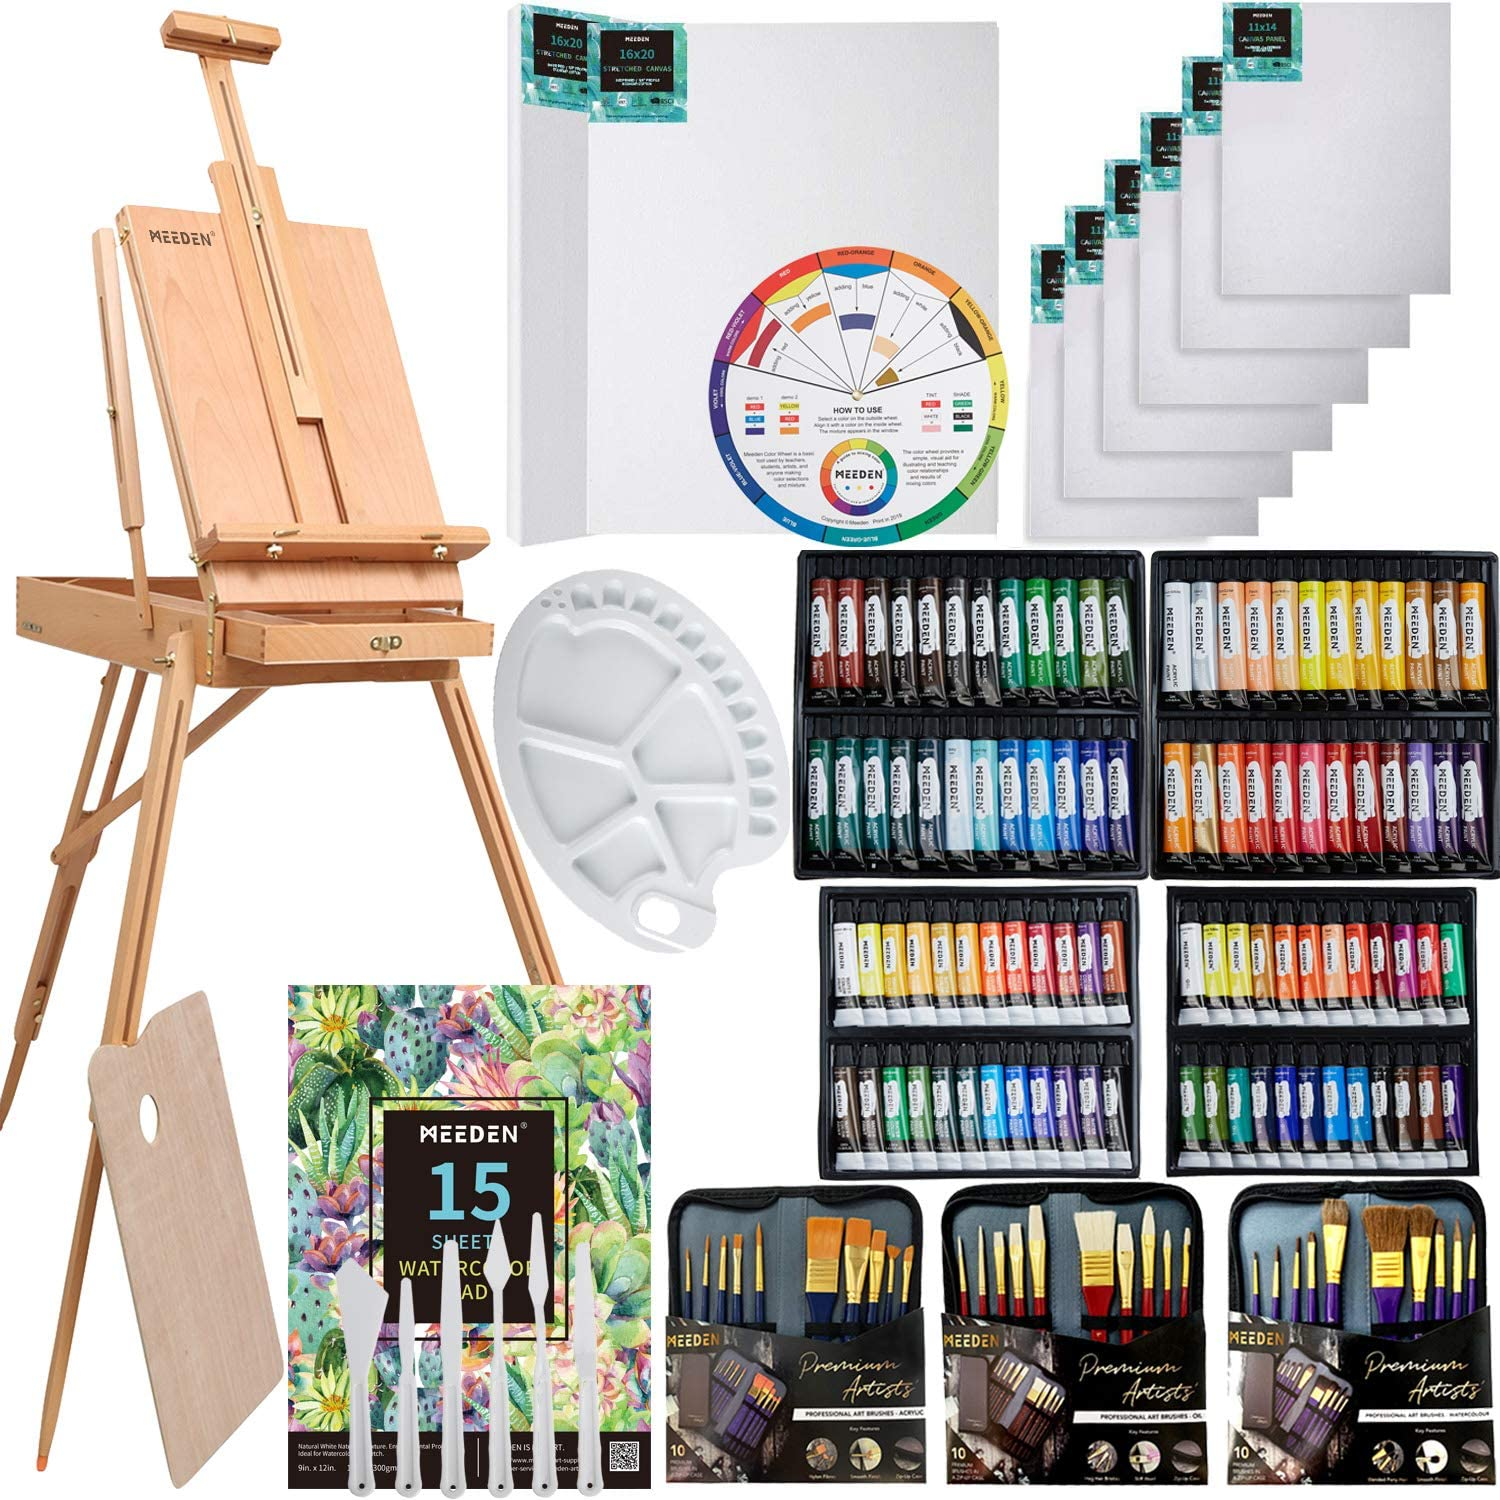 MEEDEN 145 Pcs Deluxe Artist Painting Set with French Easel, Art Painting Brushes Set, Paints Tube Set, Painting Pads, Stretched Canvas, Palette Knives for Acrylic, Oil, Watercolor Painting